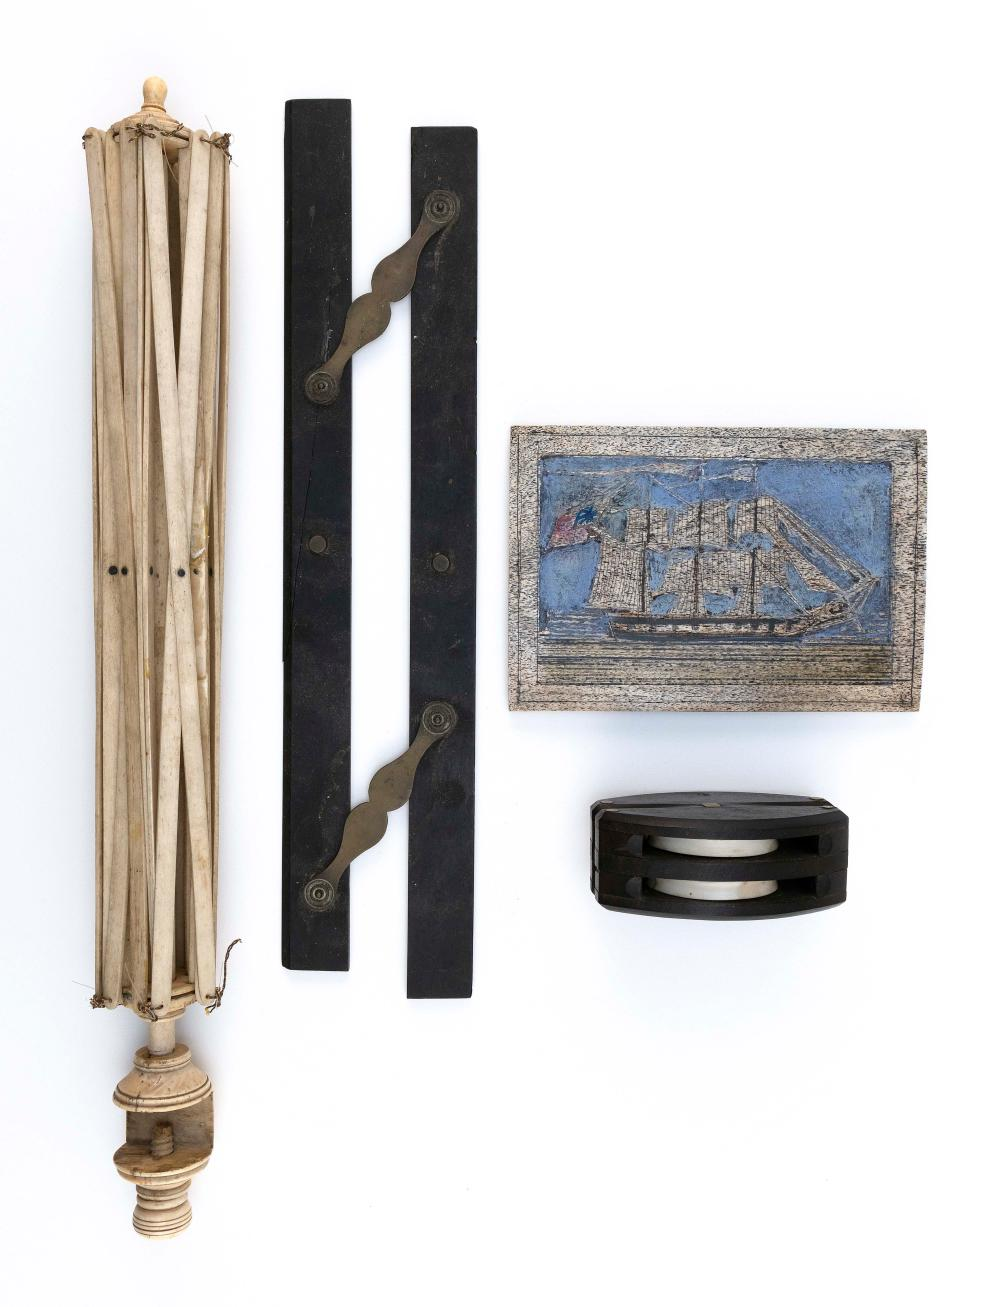 * FOUR MARITIME-RELATED ITEMS 19th and 20th Century